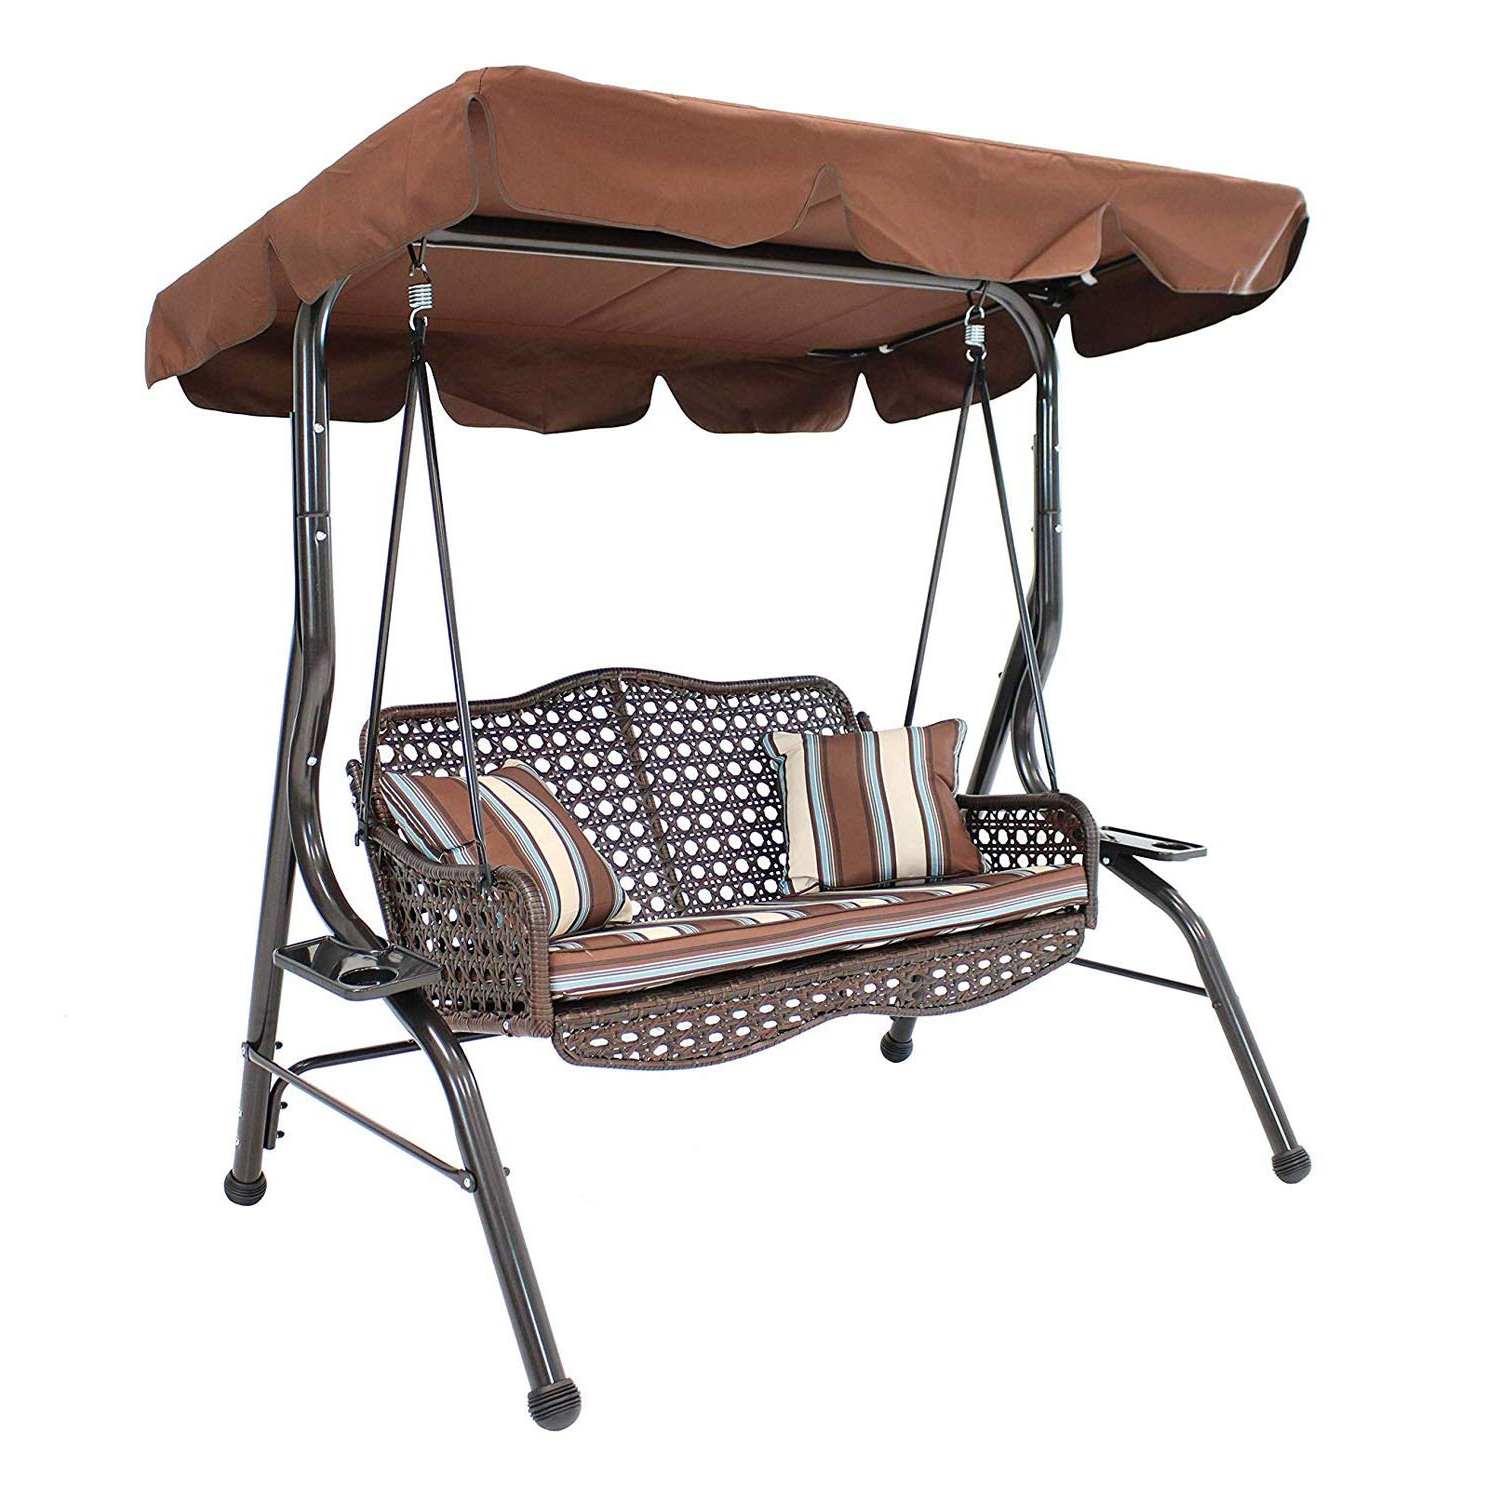 Sogeshome 2 Seat Porch Patio Swings Chairs Outdoor Lounge Chair Hammock With Canopy Brown, Rlqq2013 Br Sh Regarding Widely Used Patio Gazebo Porch Canopy Swings (View 29 of 30)